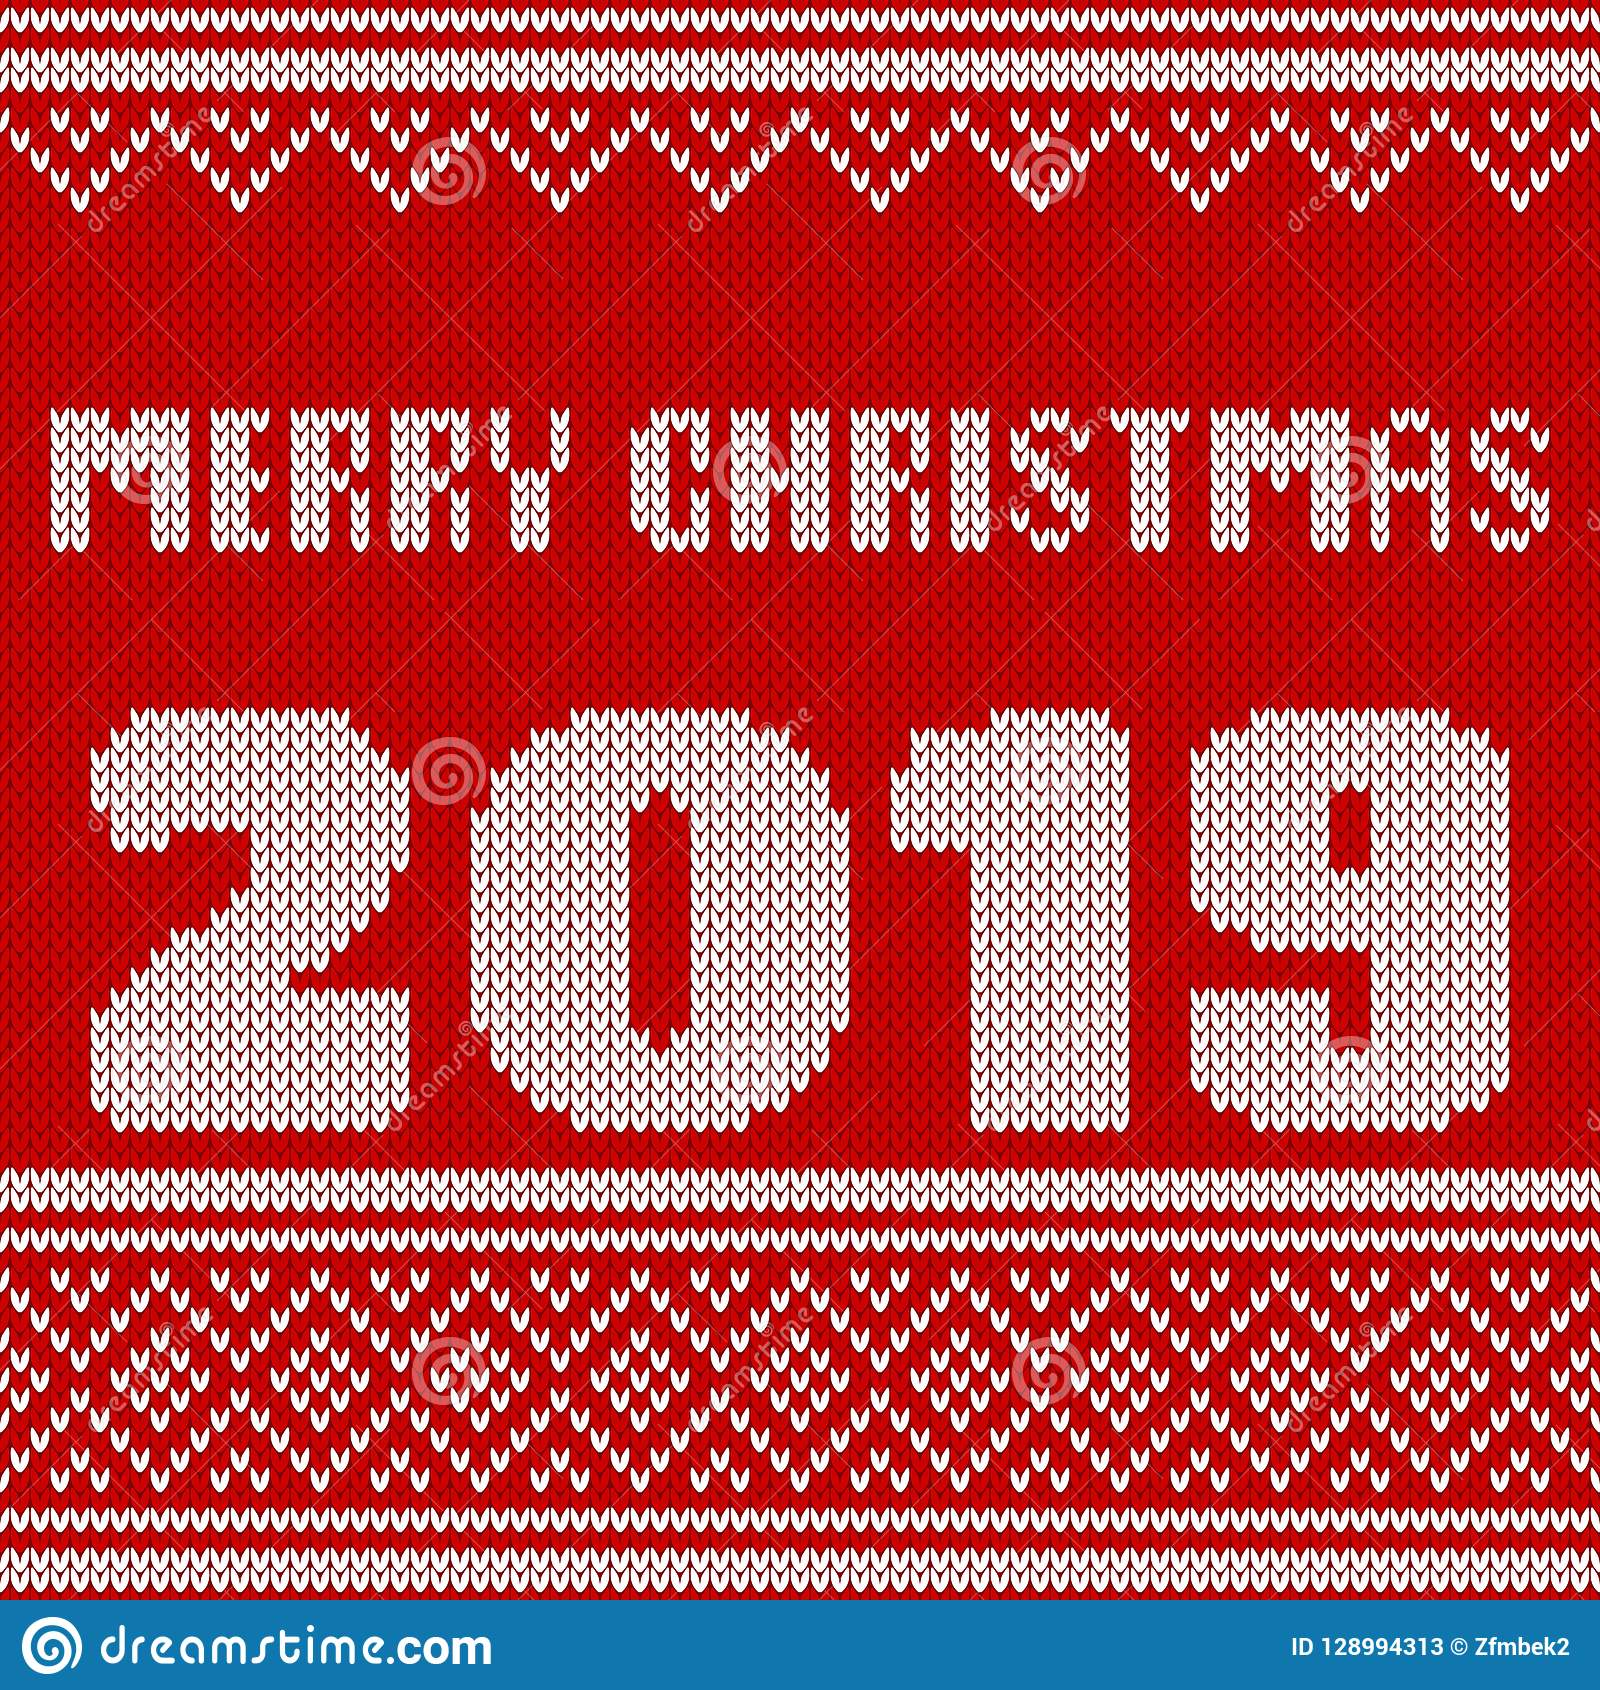 Merry Christmas New Year Seamless Knitted Pattern With